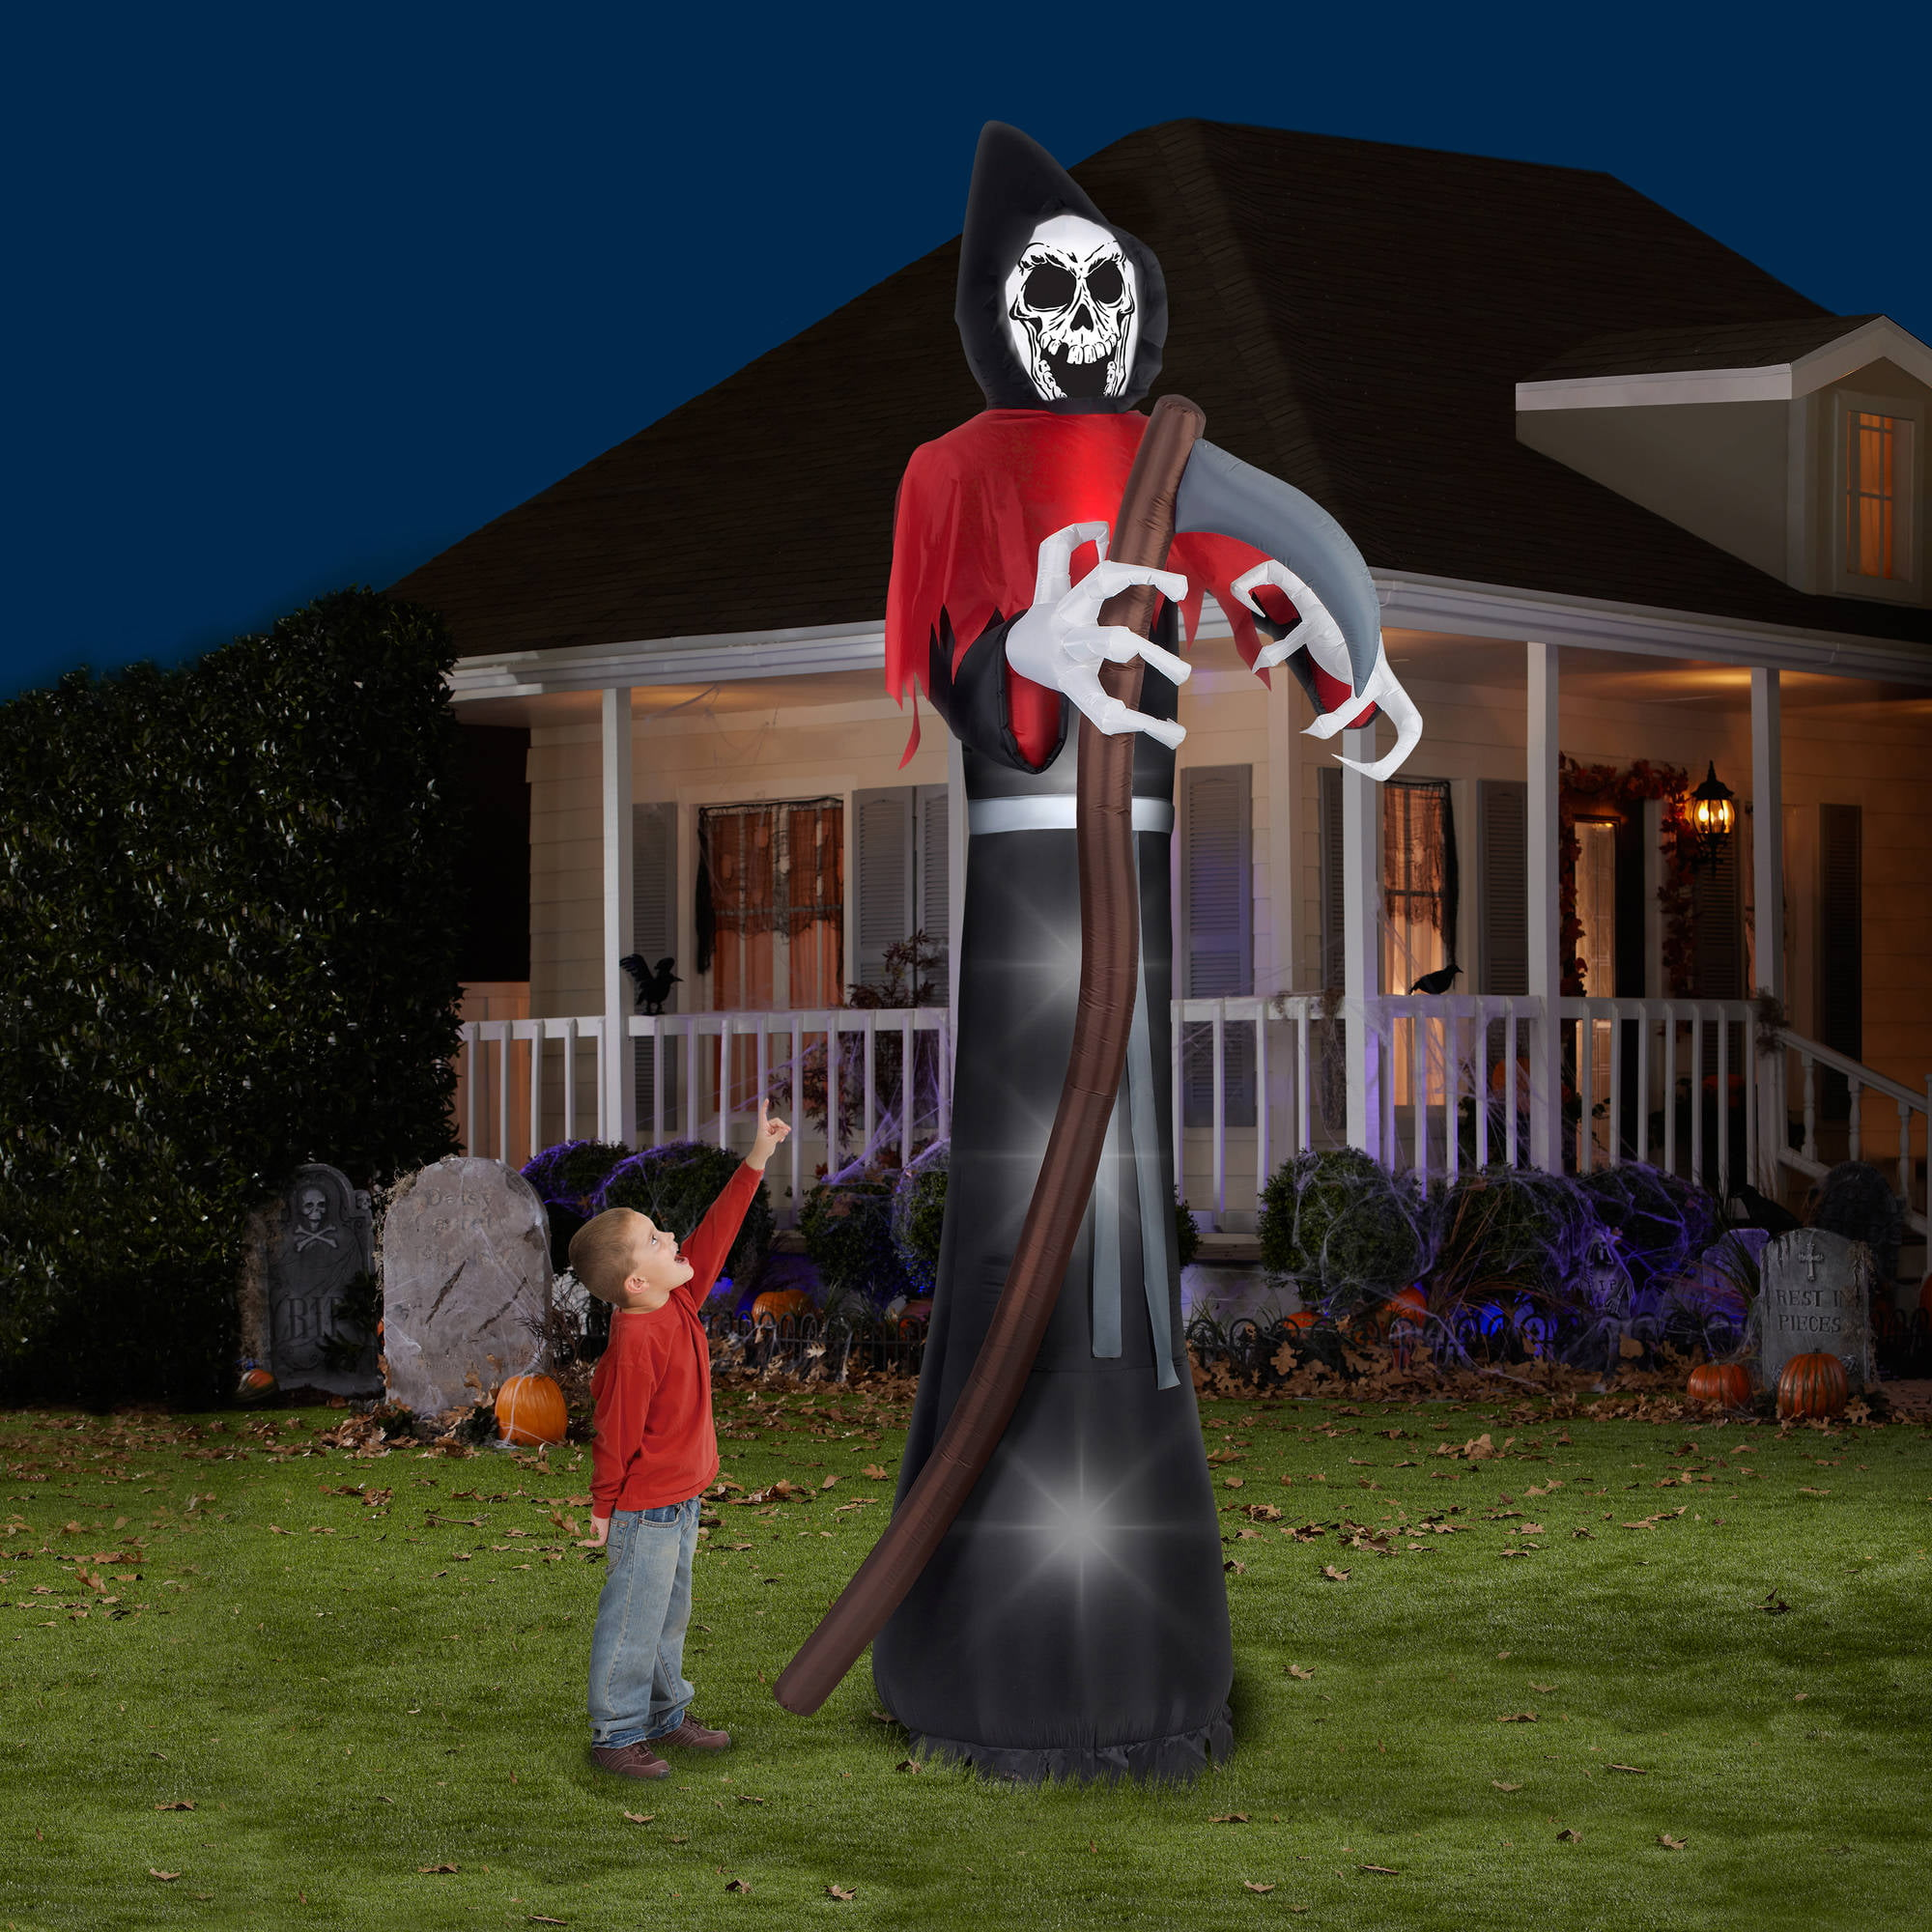 12 tall grim reaper halloween airblown inflatable walmartcom - Walmart Halloween Decorations